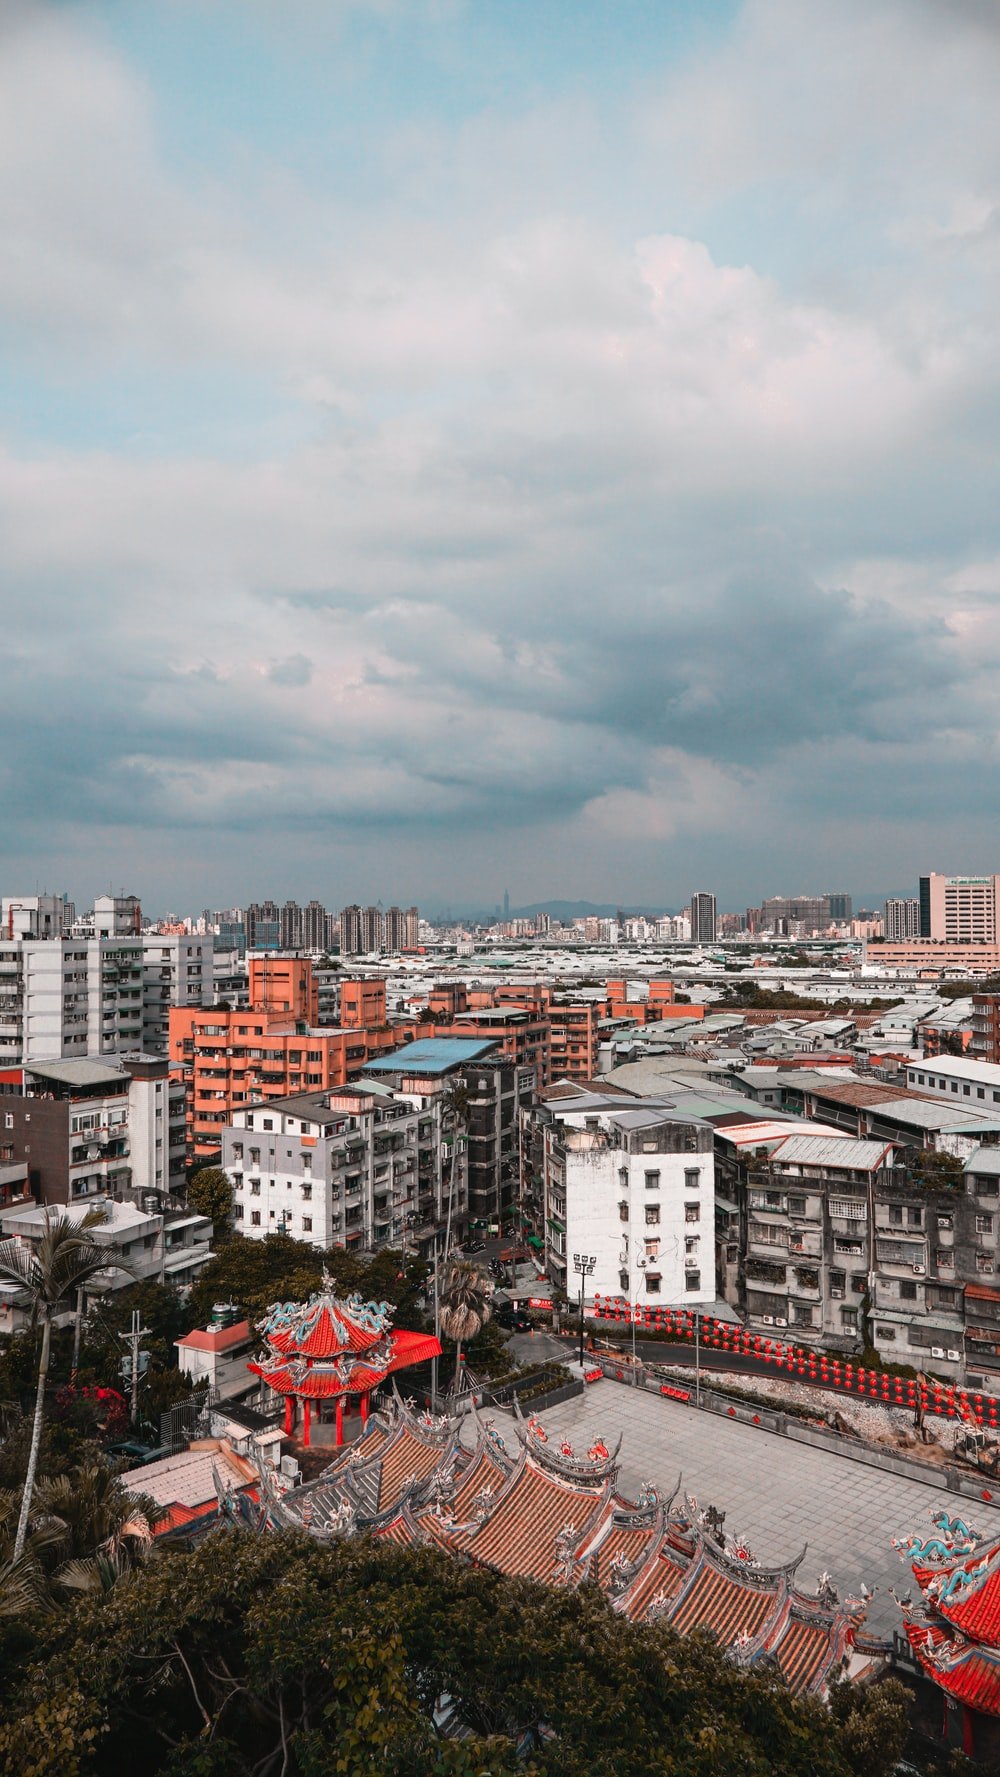 city buildings under cloudy sky during daytime